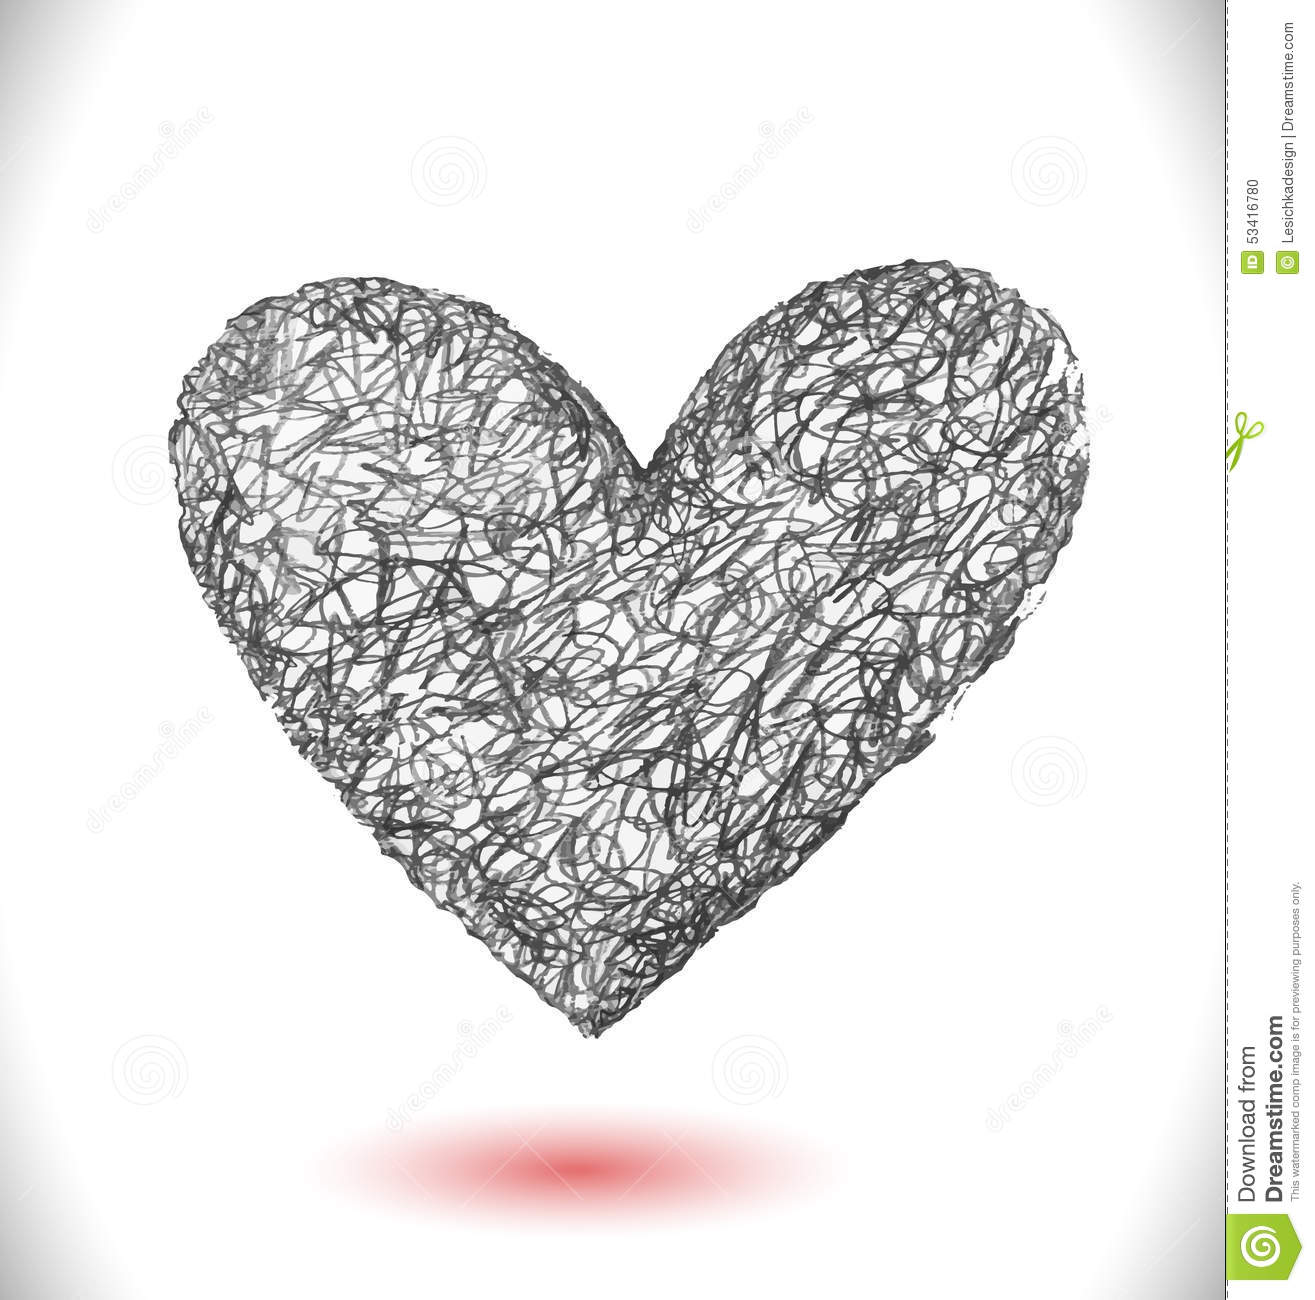 Scribble Line Drawing : Hand drawn scribble heart stock illustration image